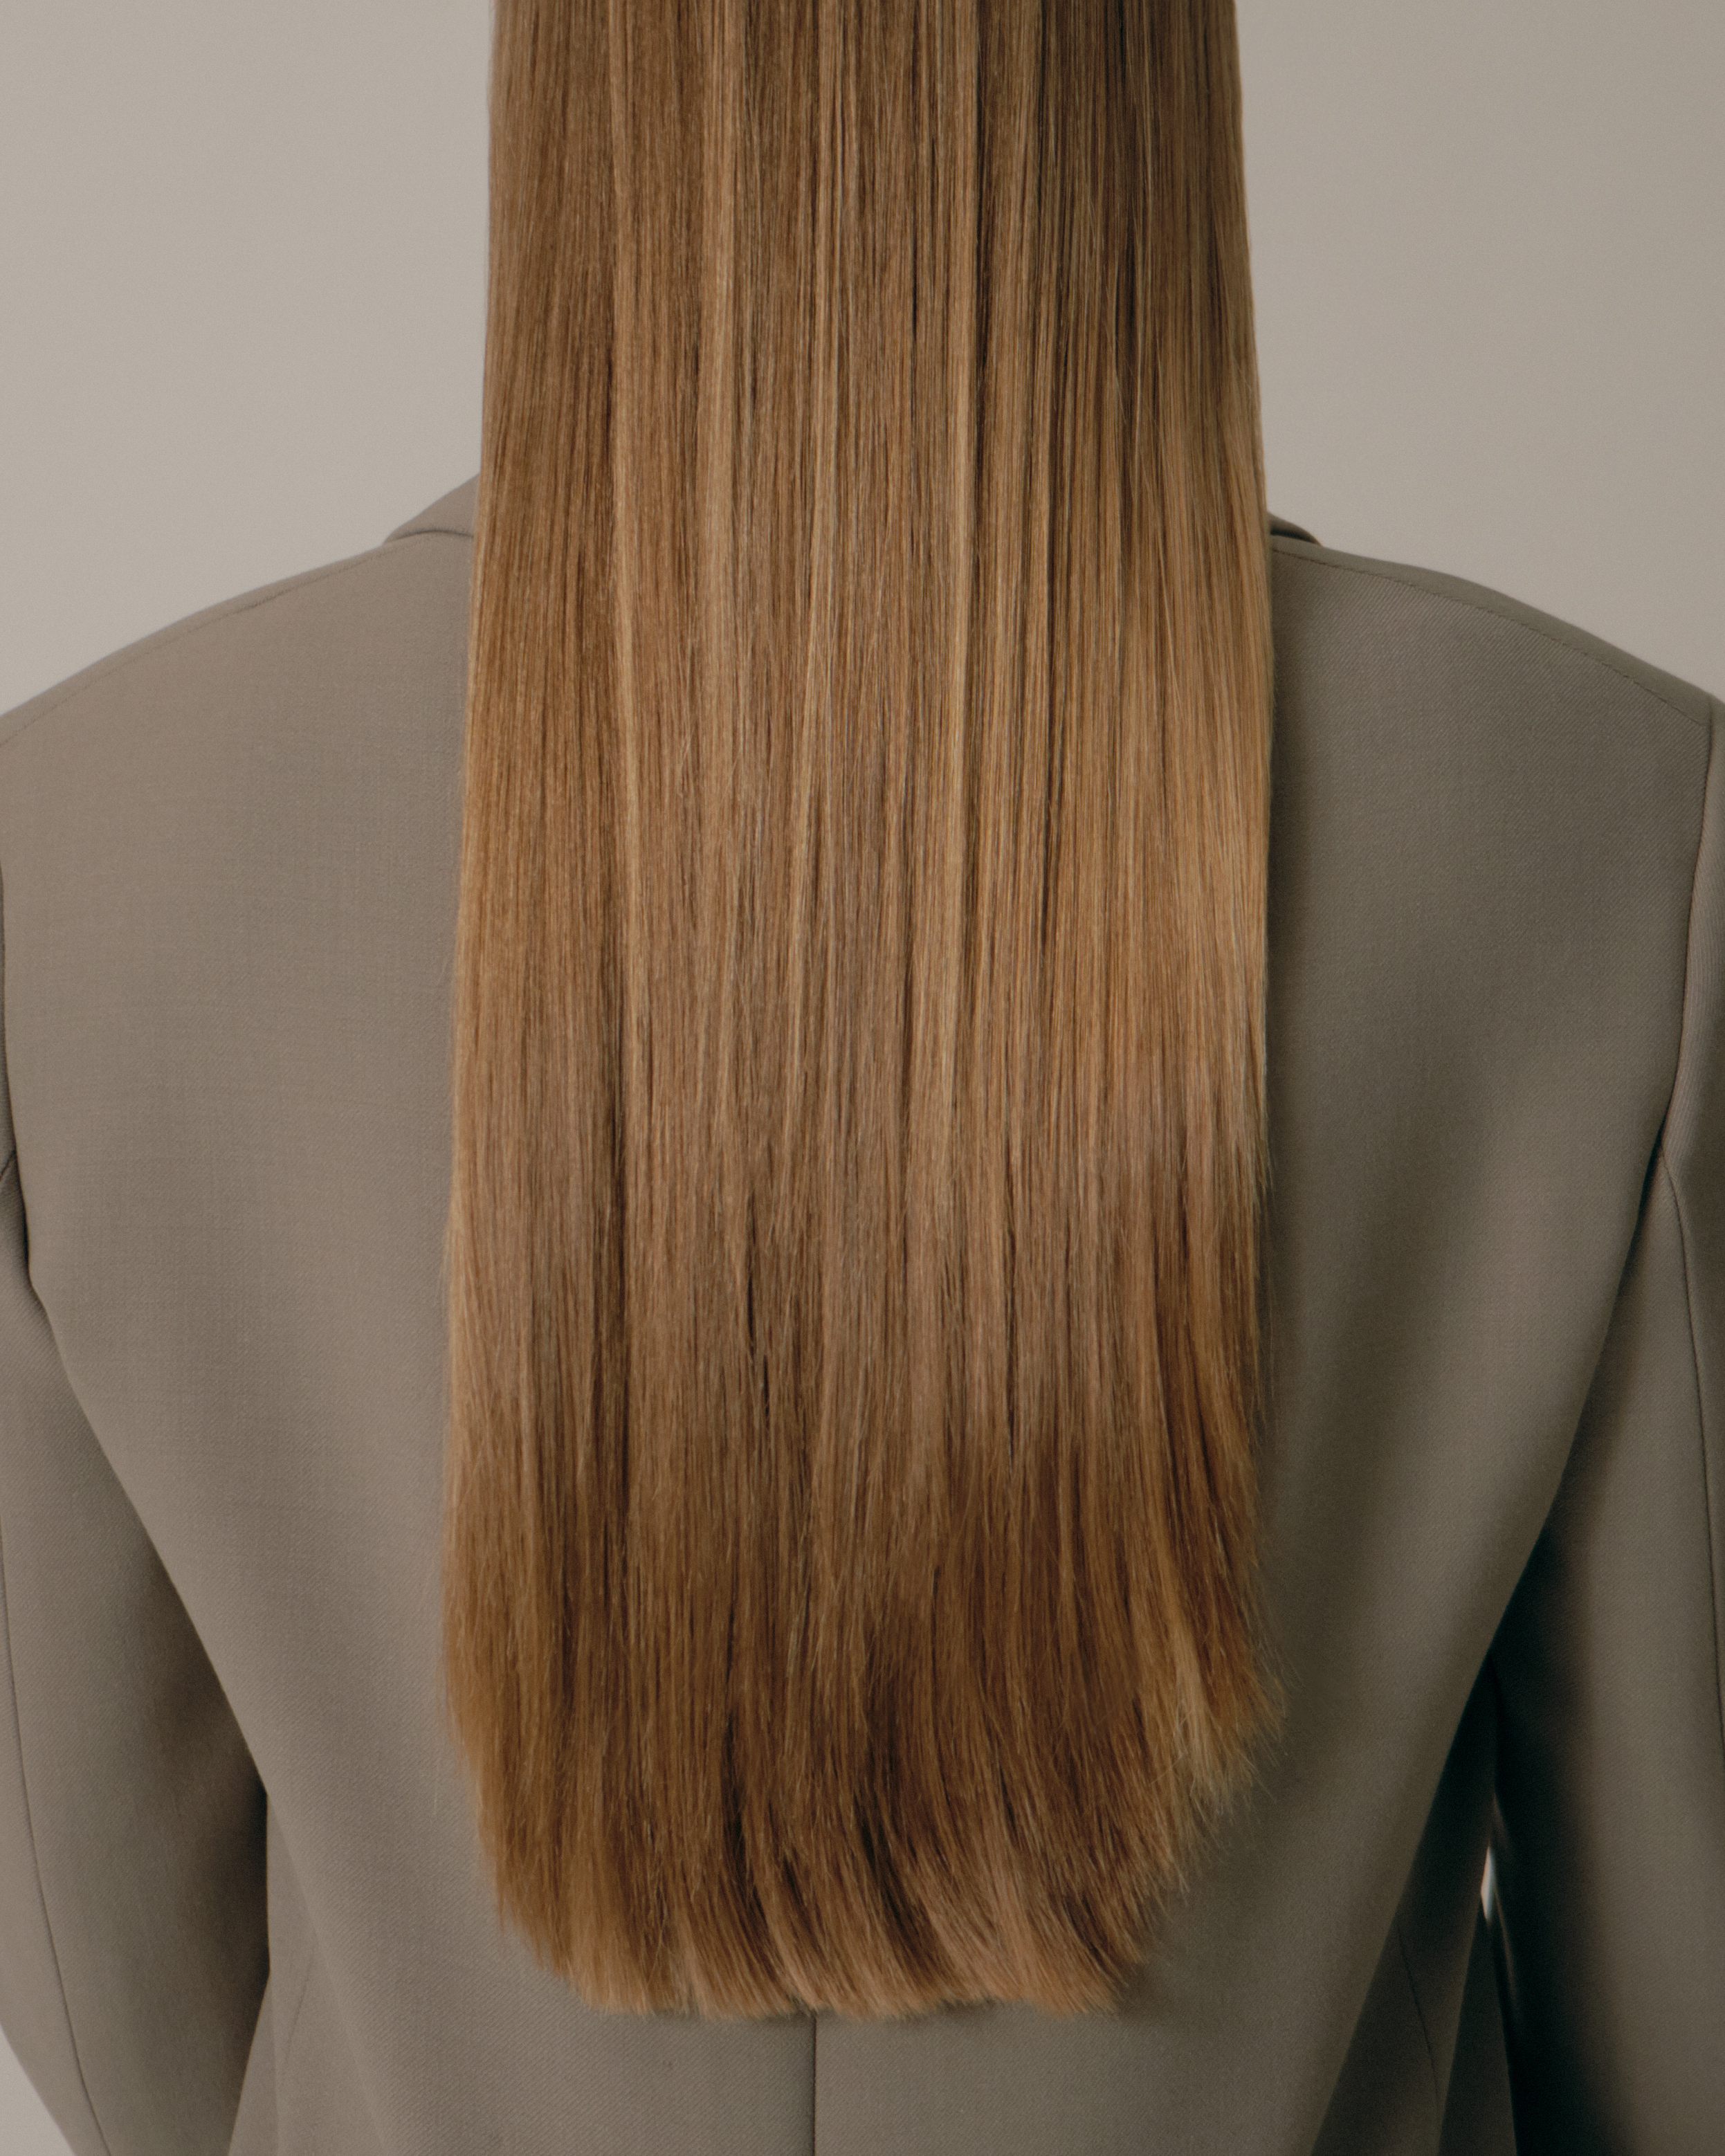 woman with long, straight brown hair has her back to the camera